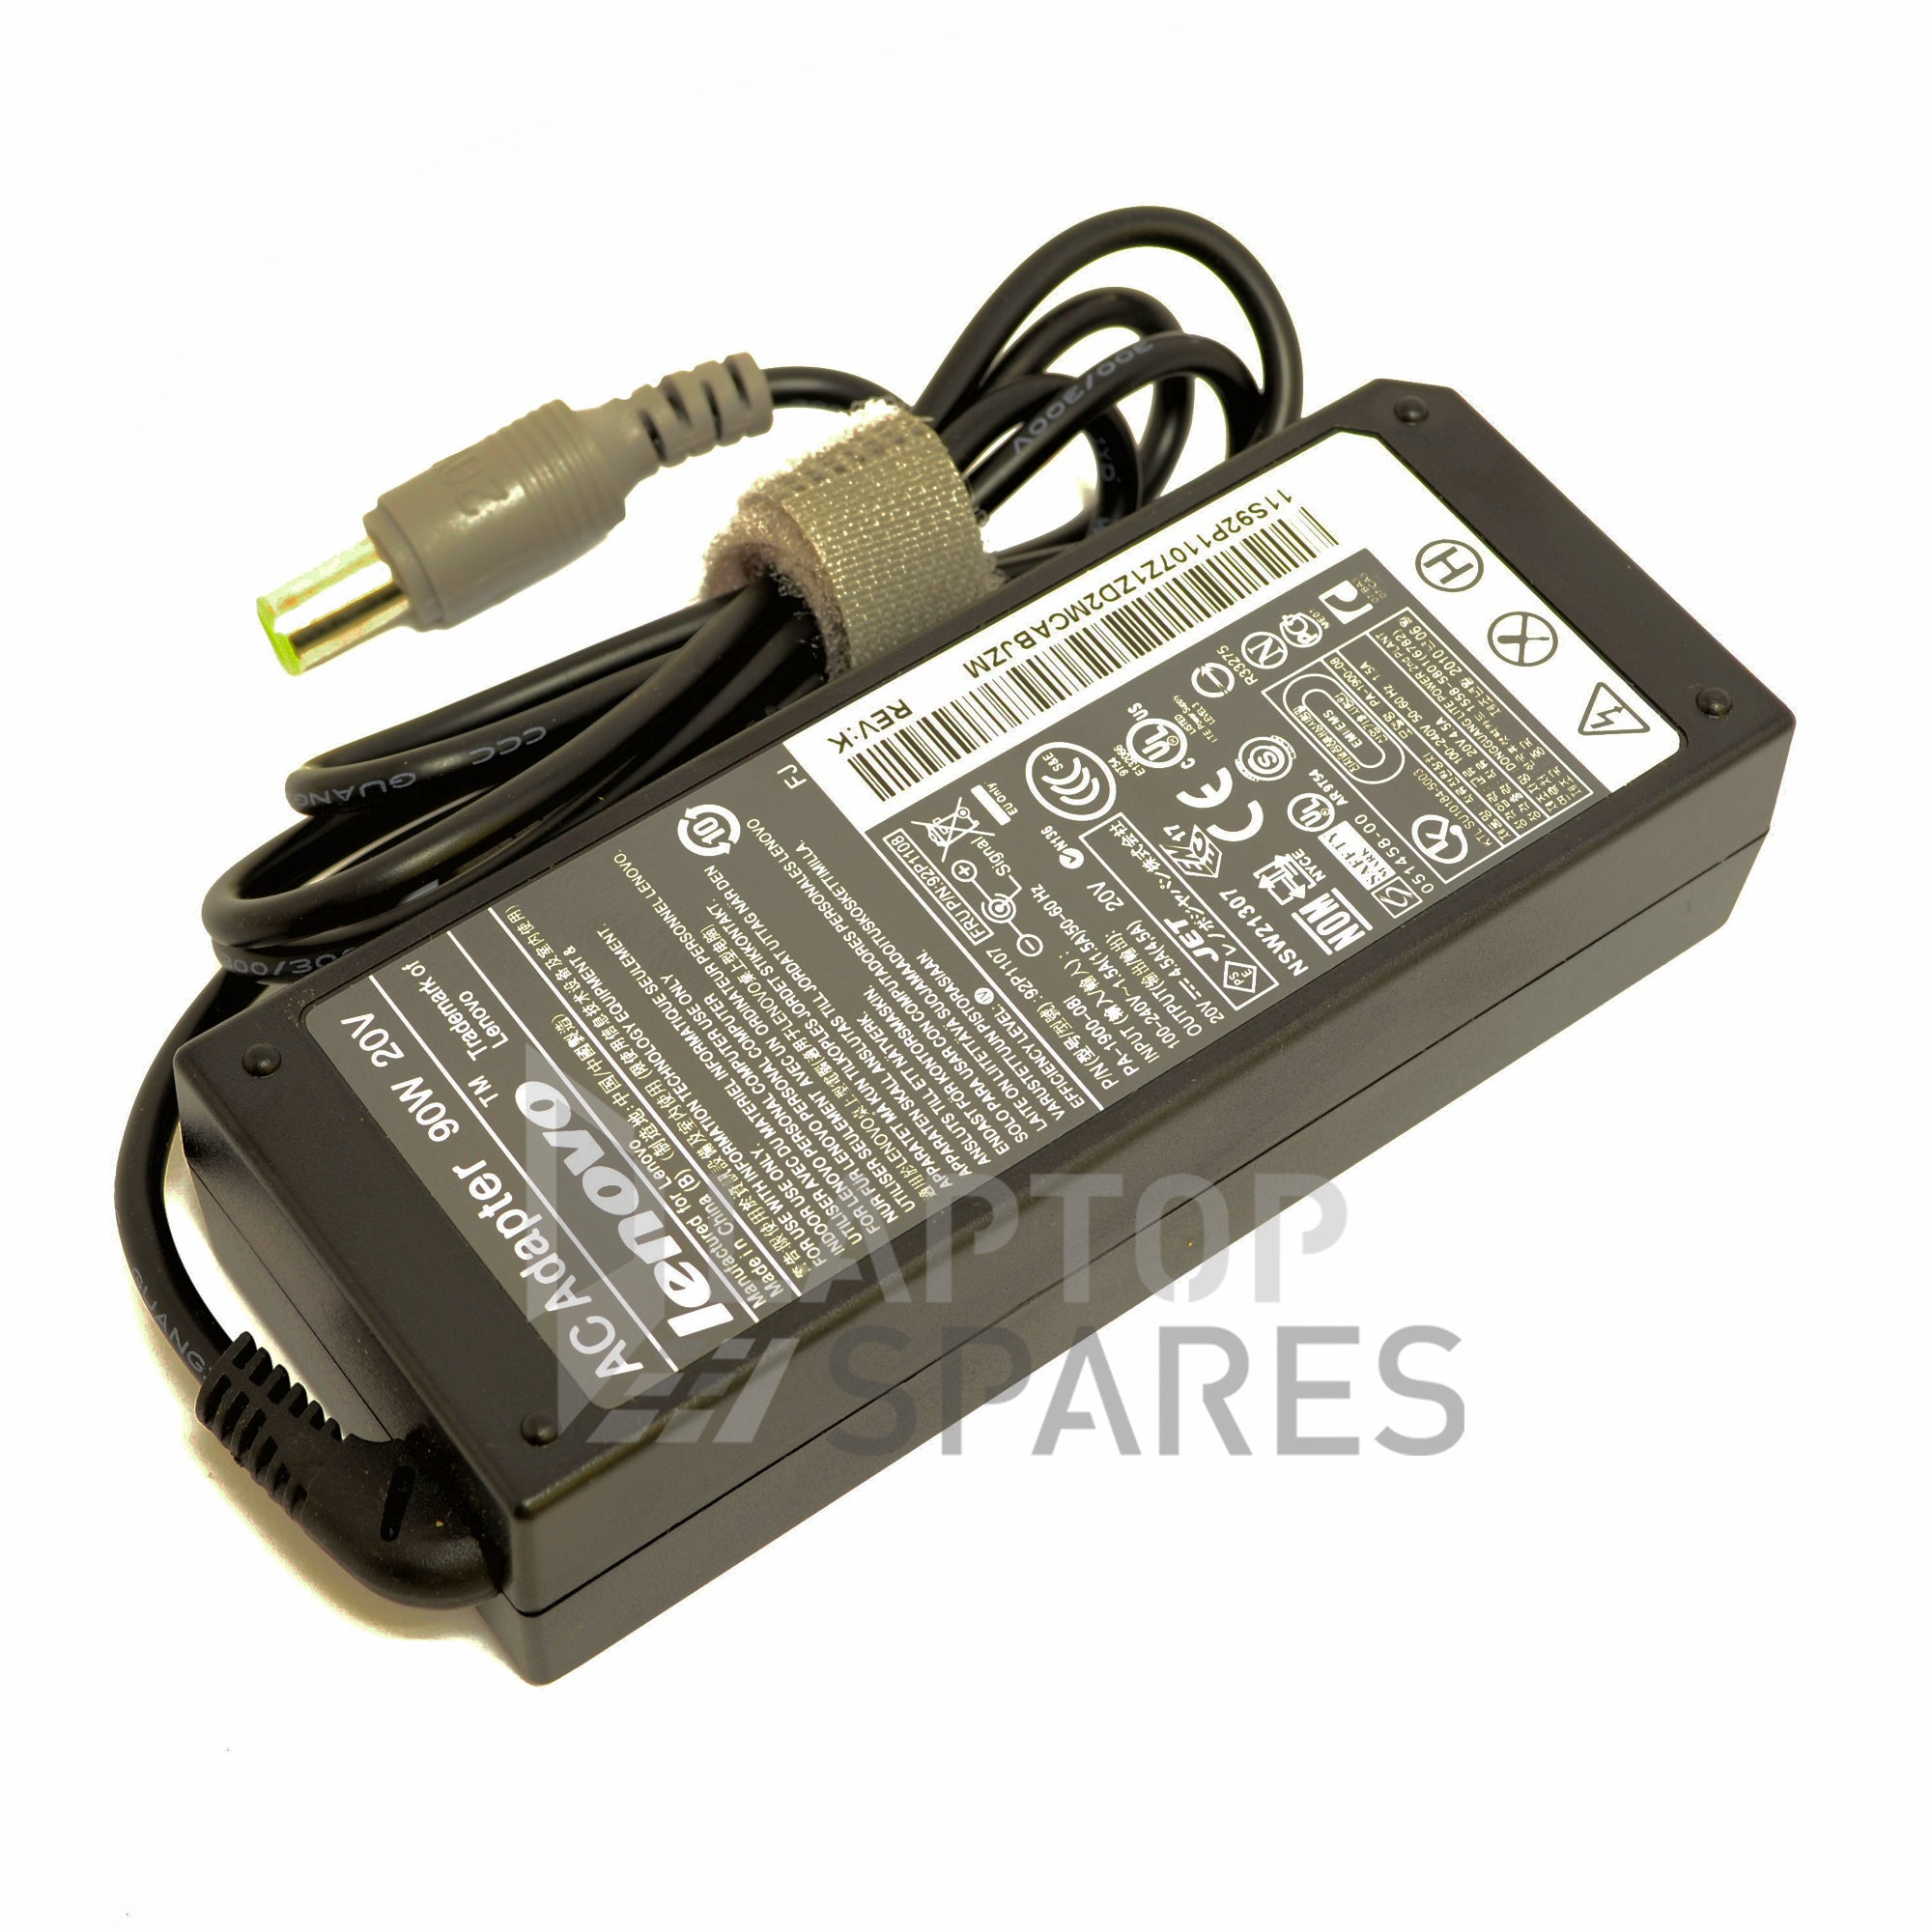 Lenovo FRU 92P1112 FRU 92P1114 Laptop AC Adapter Charger